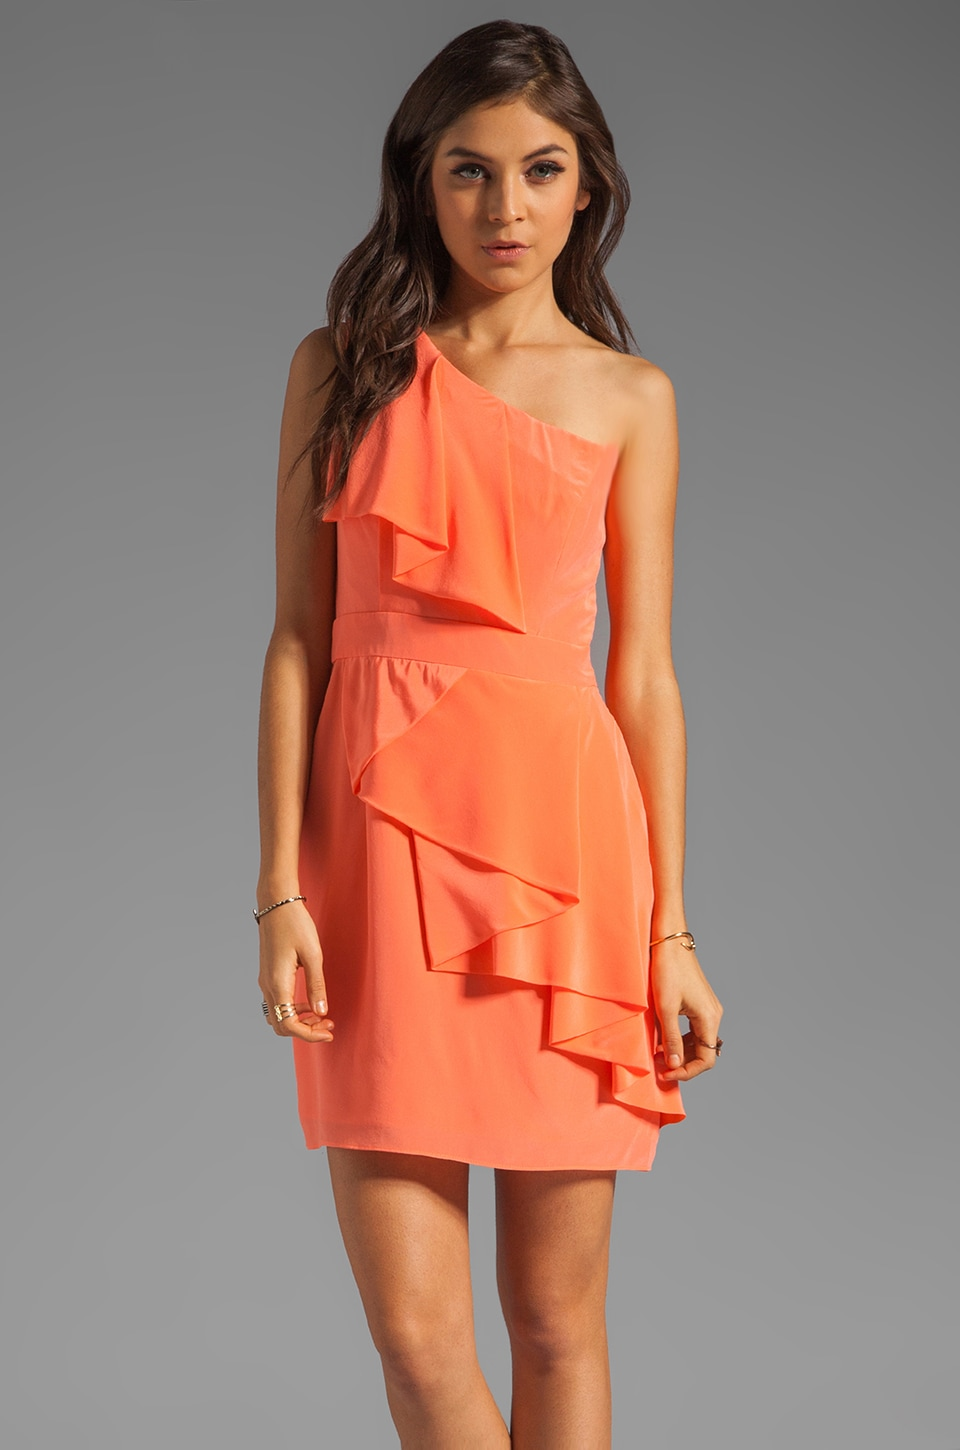 Shoshanna Sadie Dress in Neon Coral